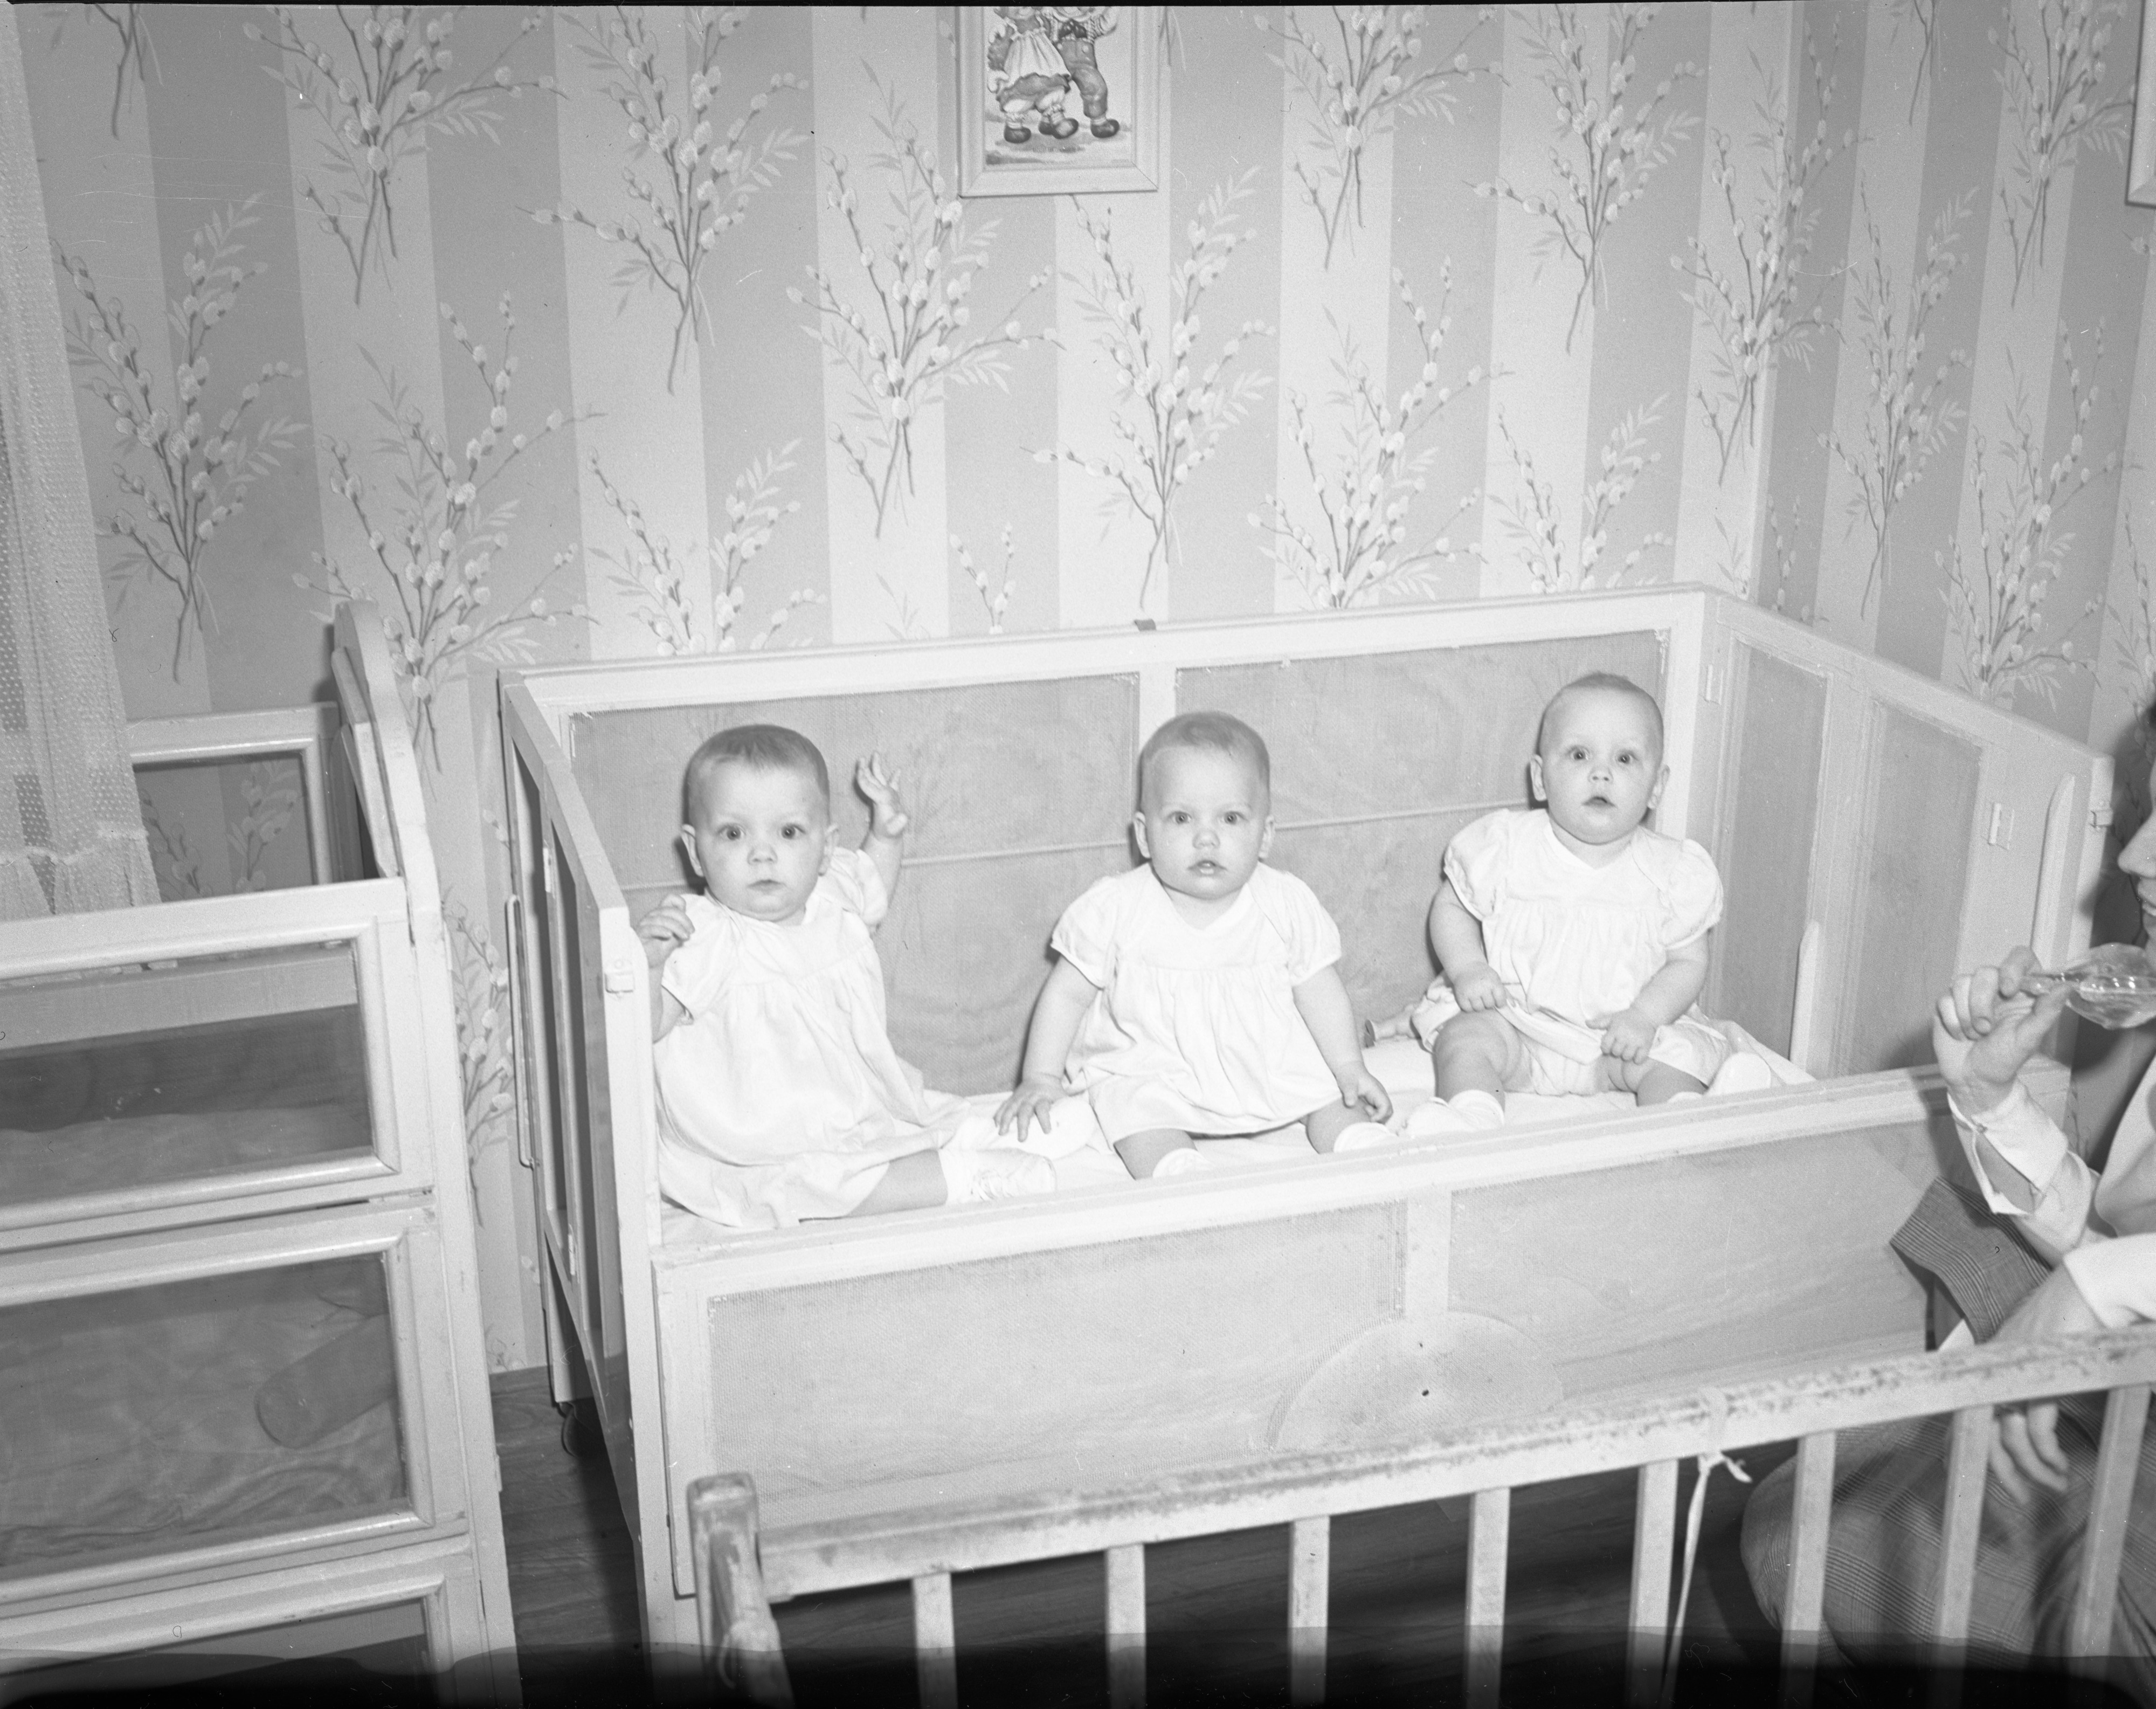 Handy Triplets - One Year Old, April 1949 image